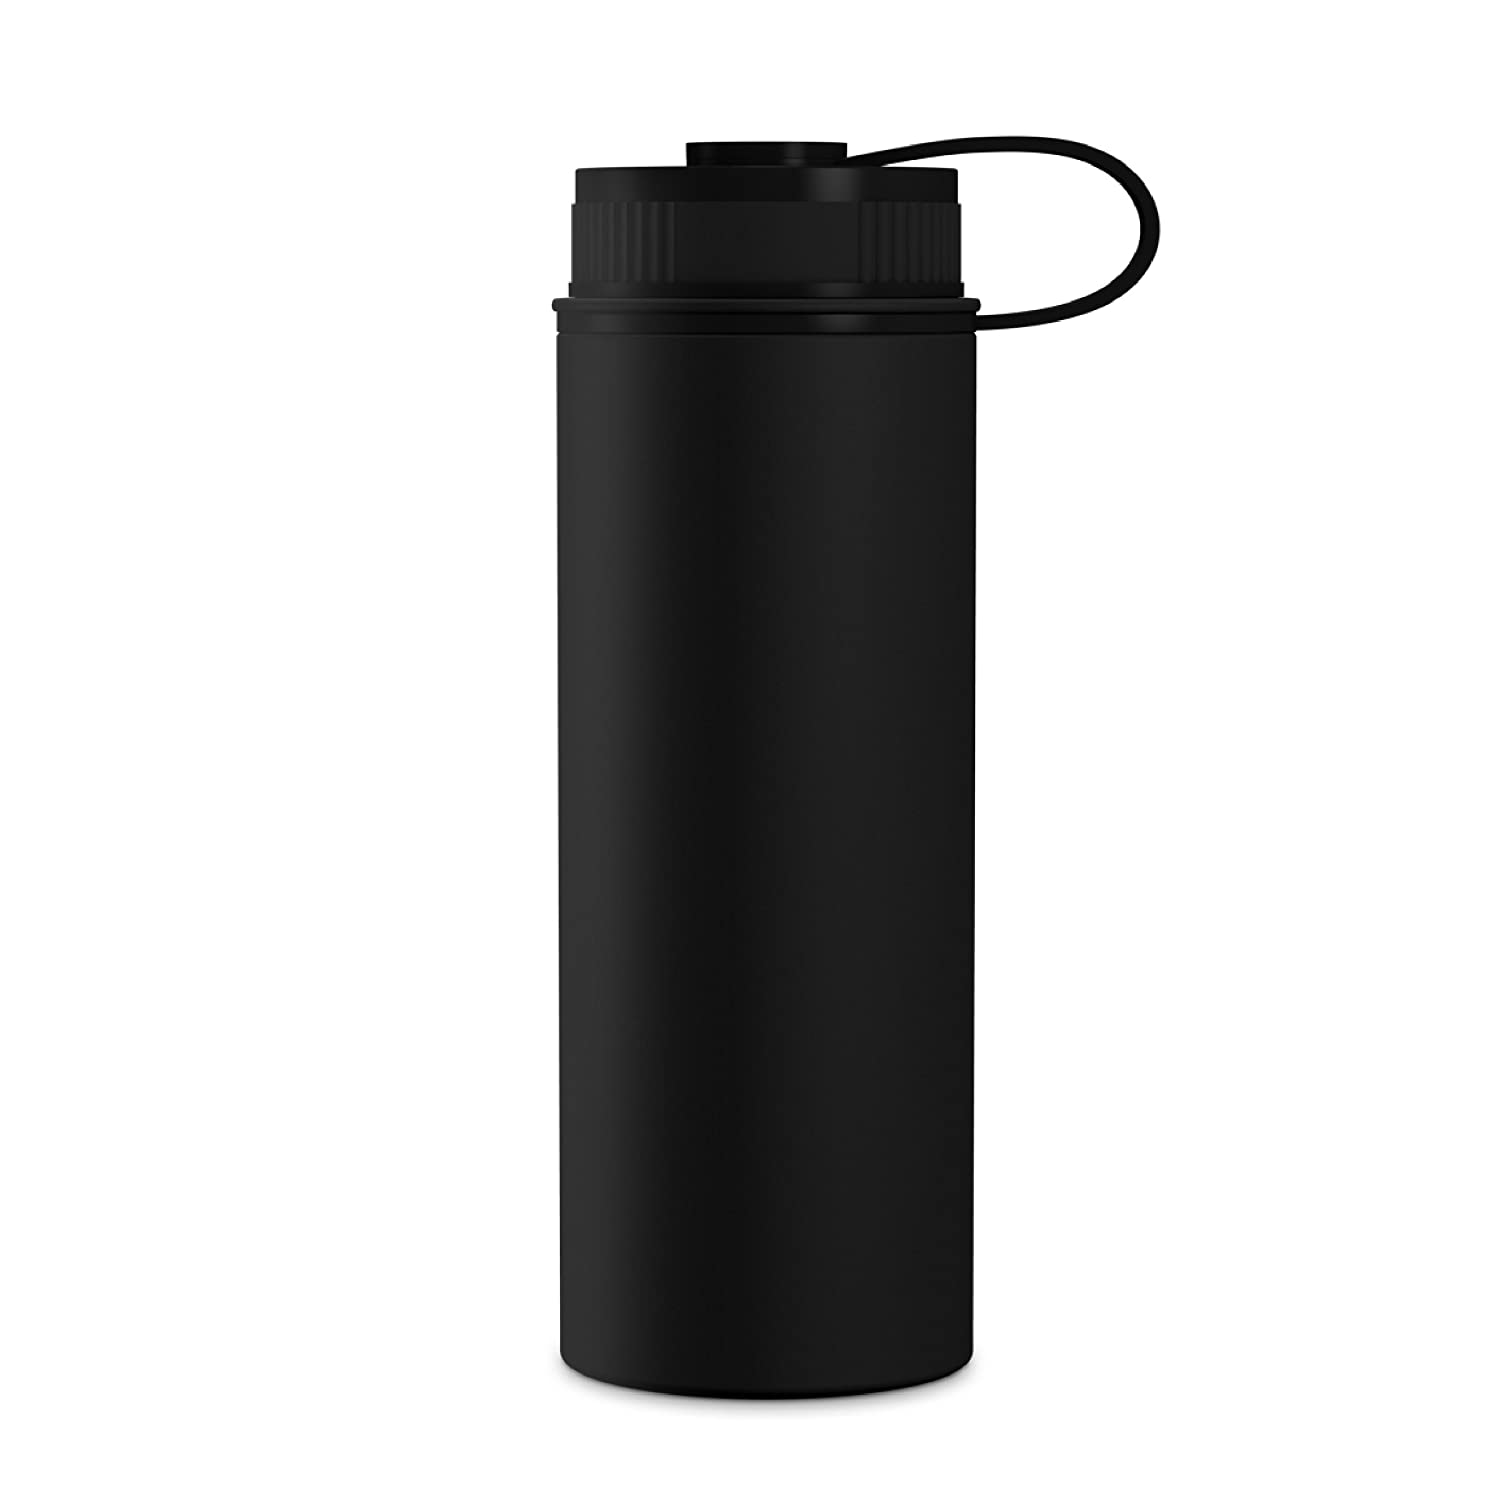 GEO 18oz Double Wall Vacuum Insulated Stainless Steel Leak Proof Sports Water Bottle Wide Mouth w//BPA Free Screw Cap